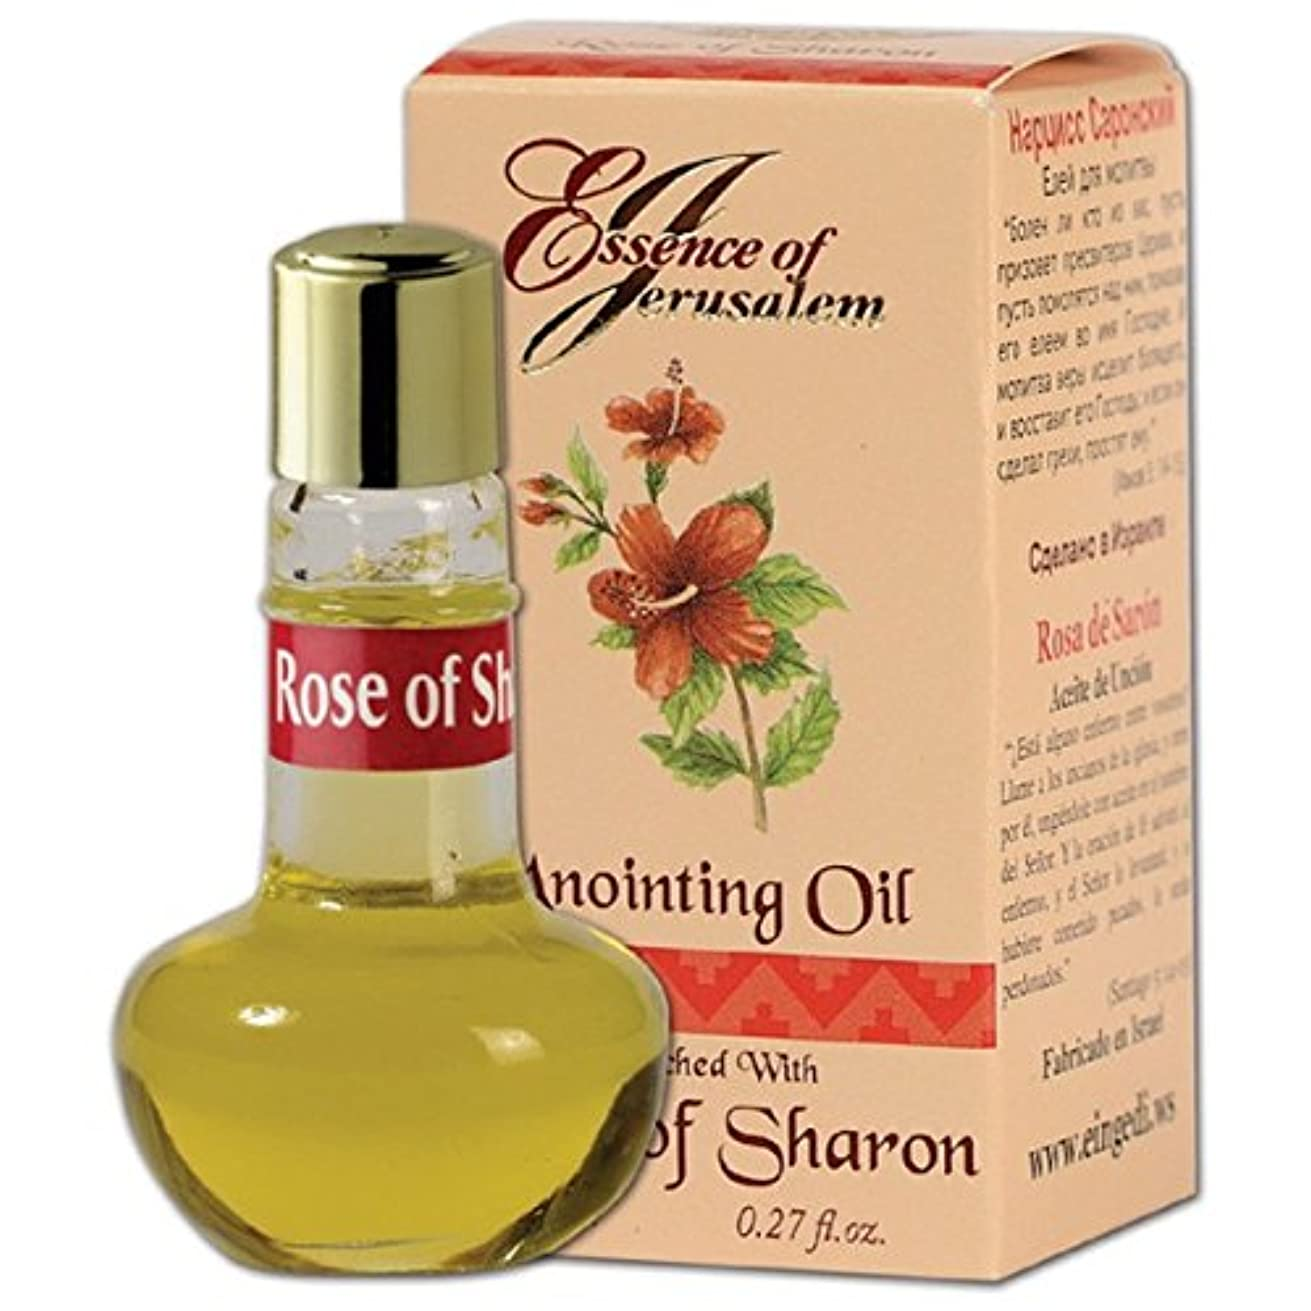 びっくりドレス手書きEssence of Jerusalem Anointing Oil Enriched with Biblicalスパイス0.27 FL OZ byベツレヘムギフトTM